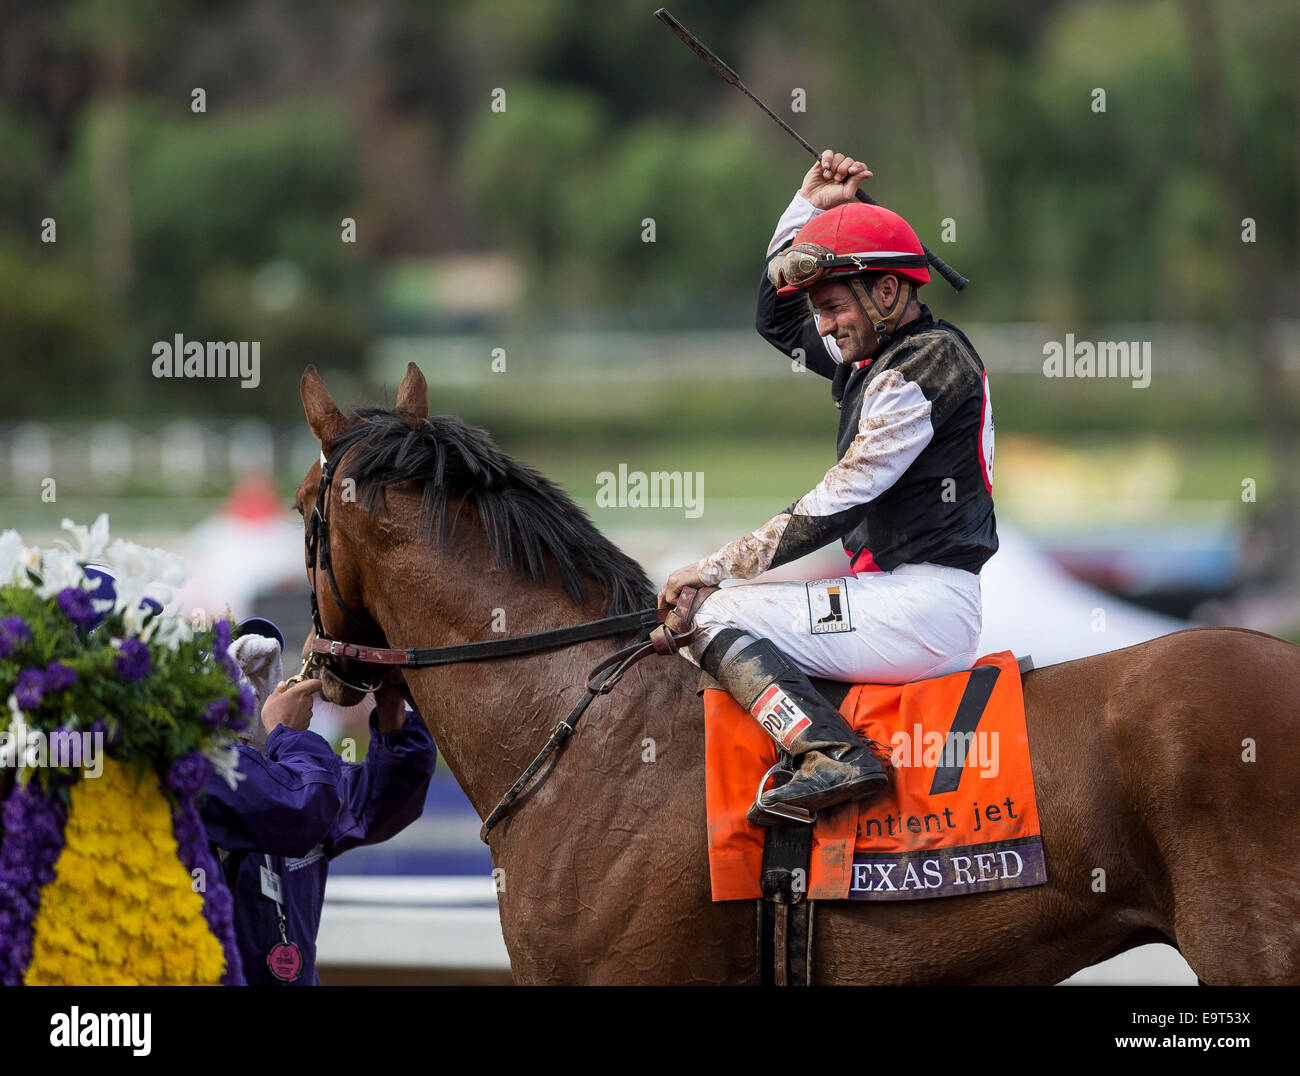 Arcadia, CA, USA. 1st Nov, 2014. November 1, 2014: Texas Red, ridden by Kent Desormeaux and trained by J. Desormeaux, - Stock Image